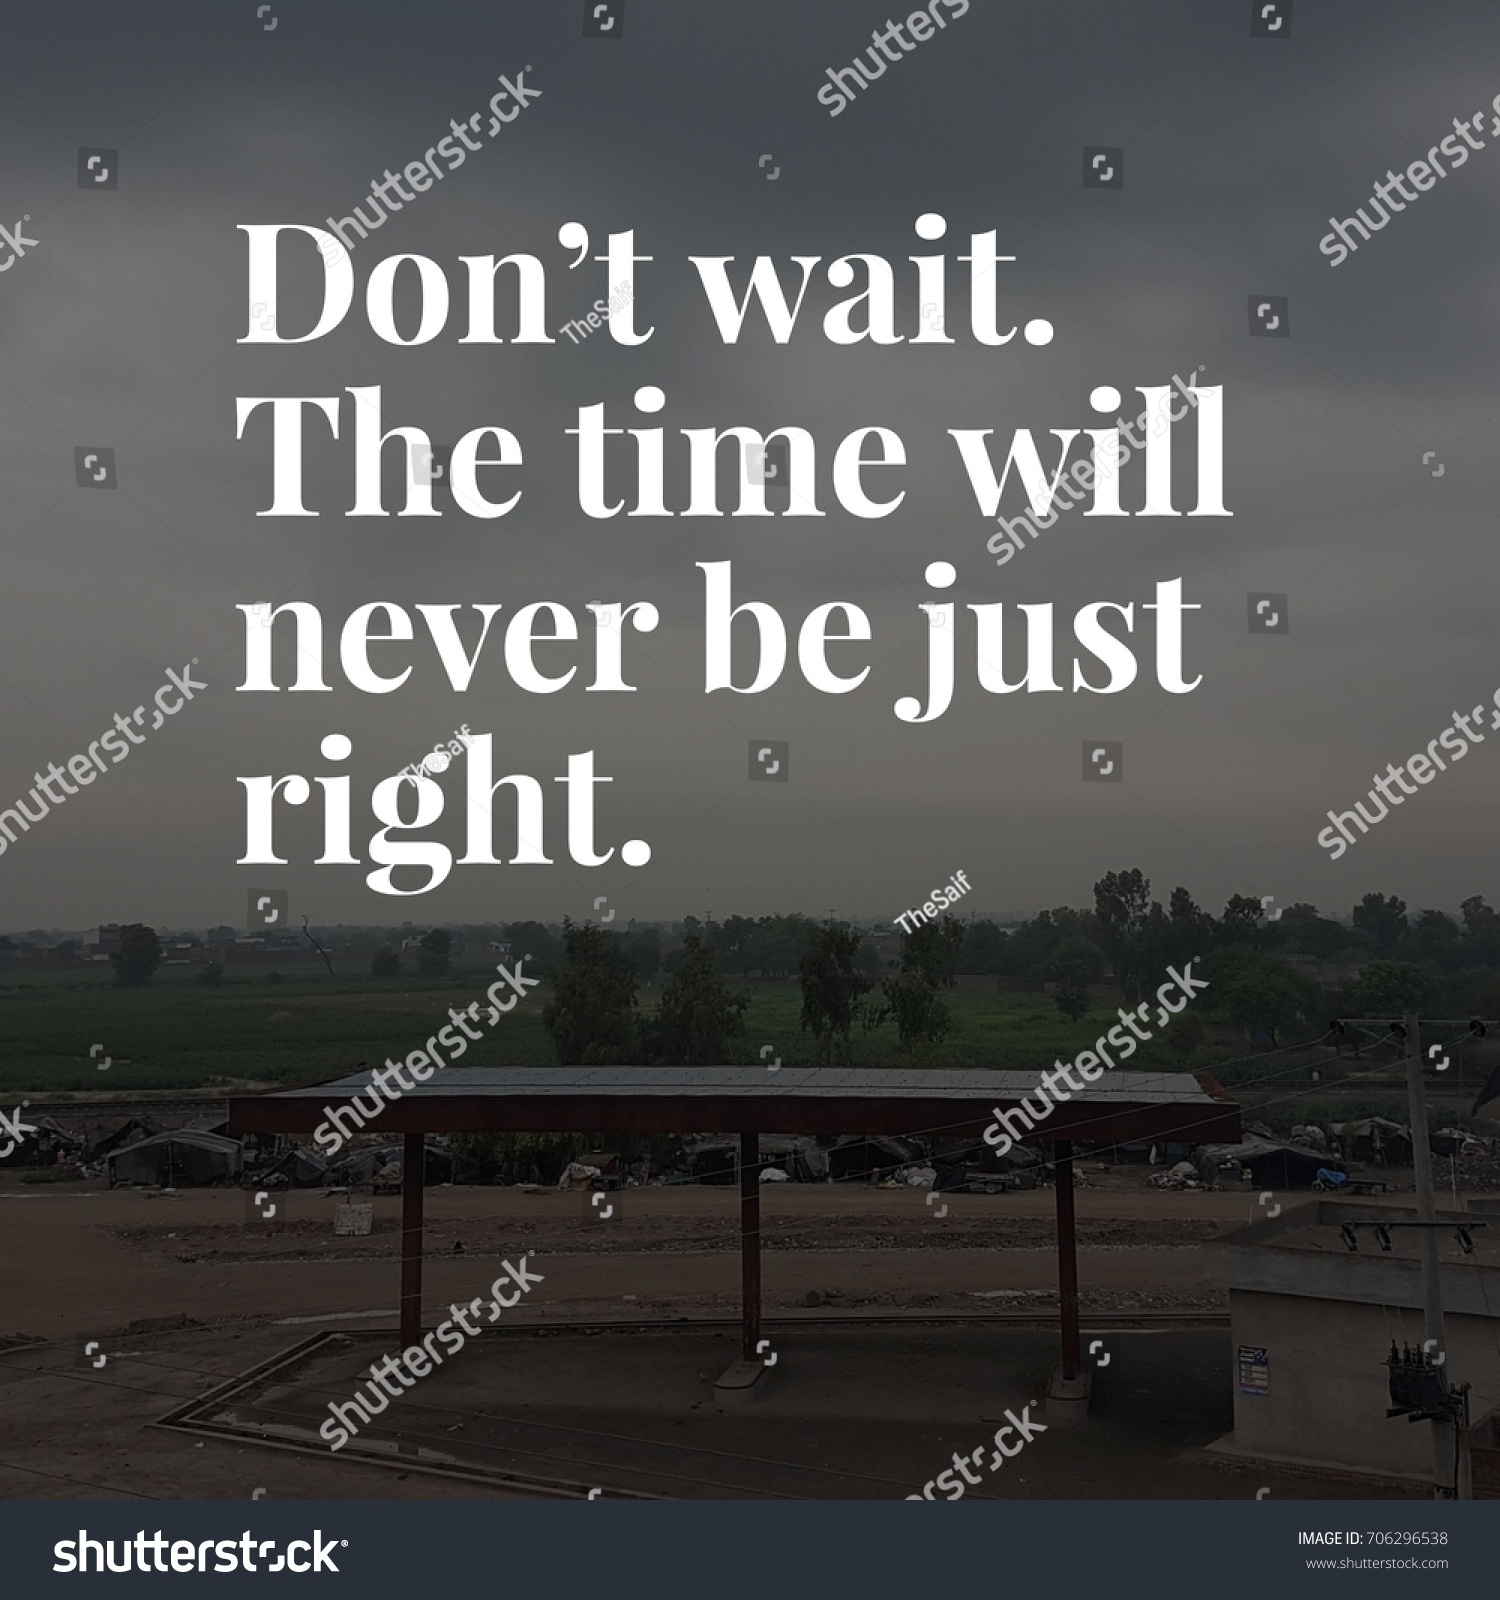 Inspirational Life Quotes And Sayings Captivating Quote Best Inspirational Motivational Quotes Sayings Stock Photo